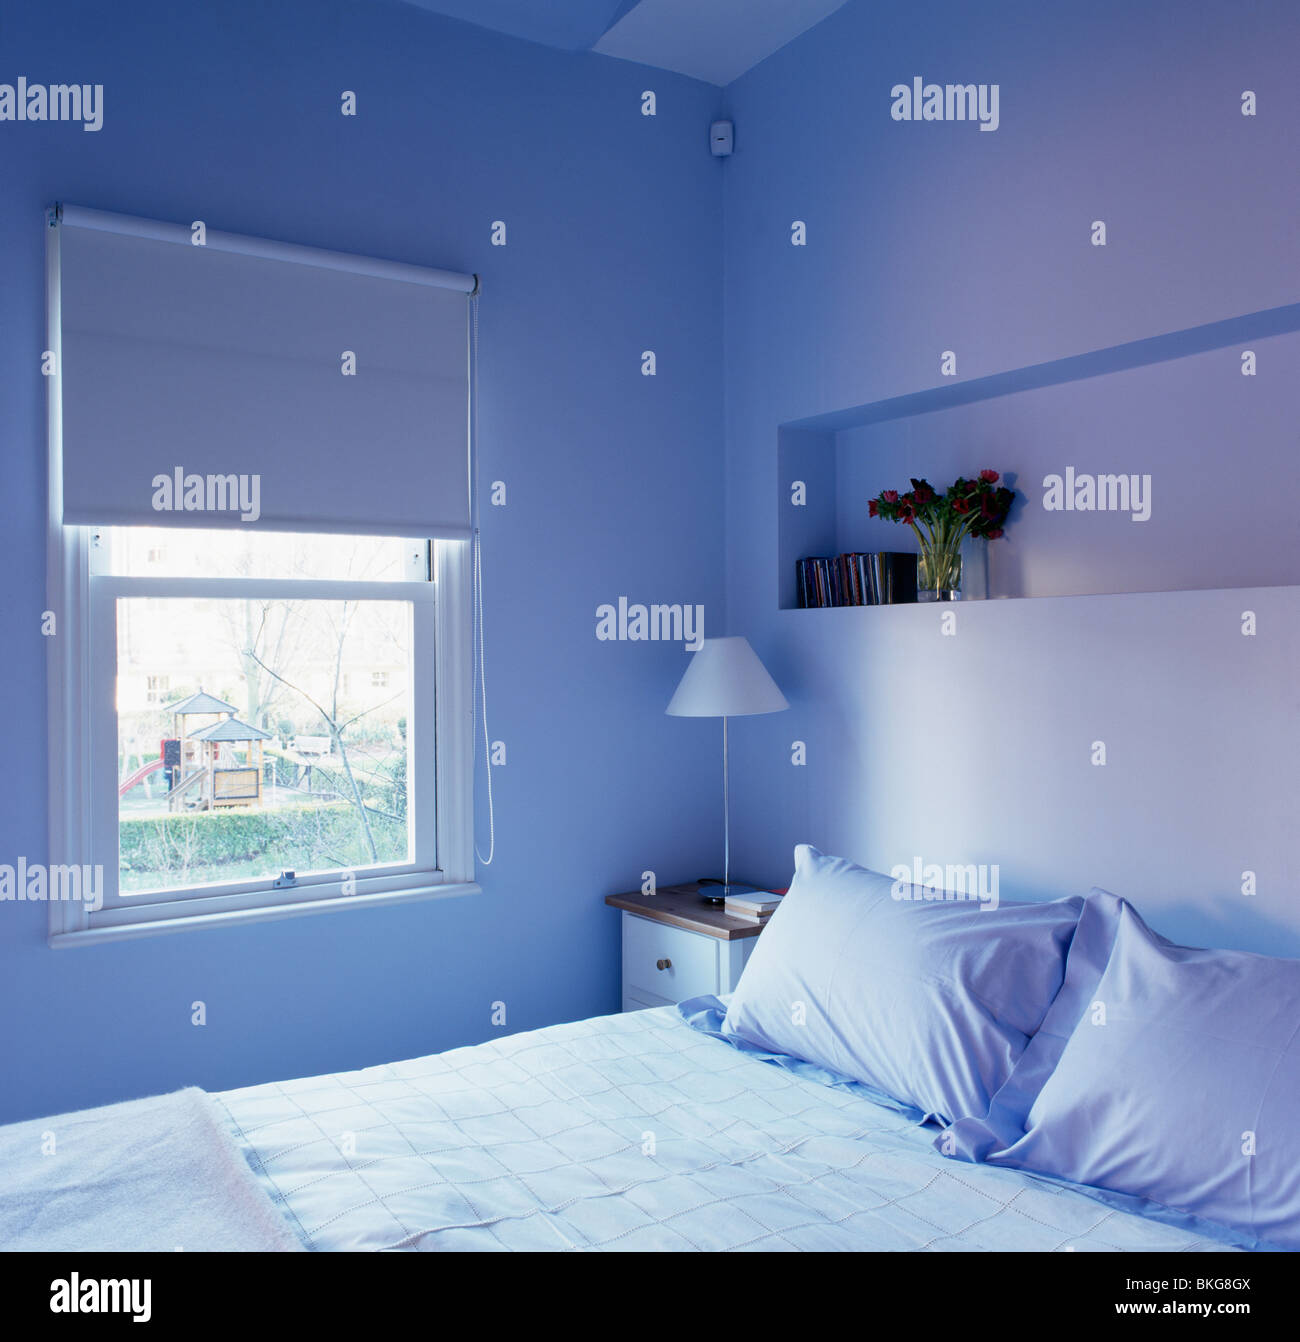 Modern Blue Bedroom Blue Blind On Window In Modern Blue Apartment Bedroom With Alcove